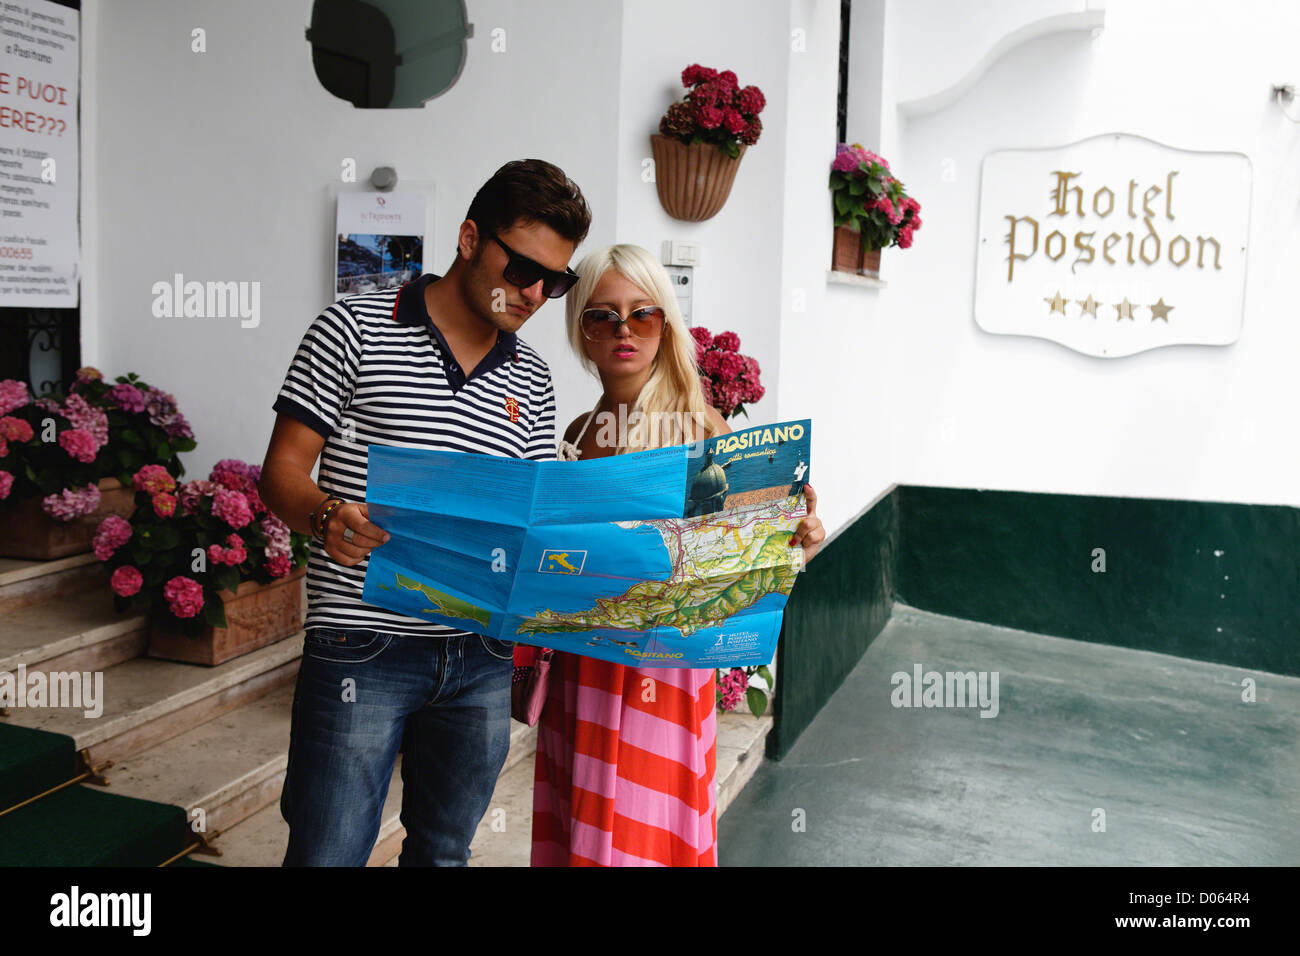 Young Couple Looking at a Map for Directions, Positano,Campania, Italy - Stock Image